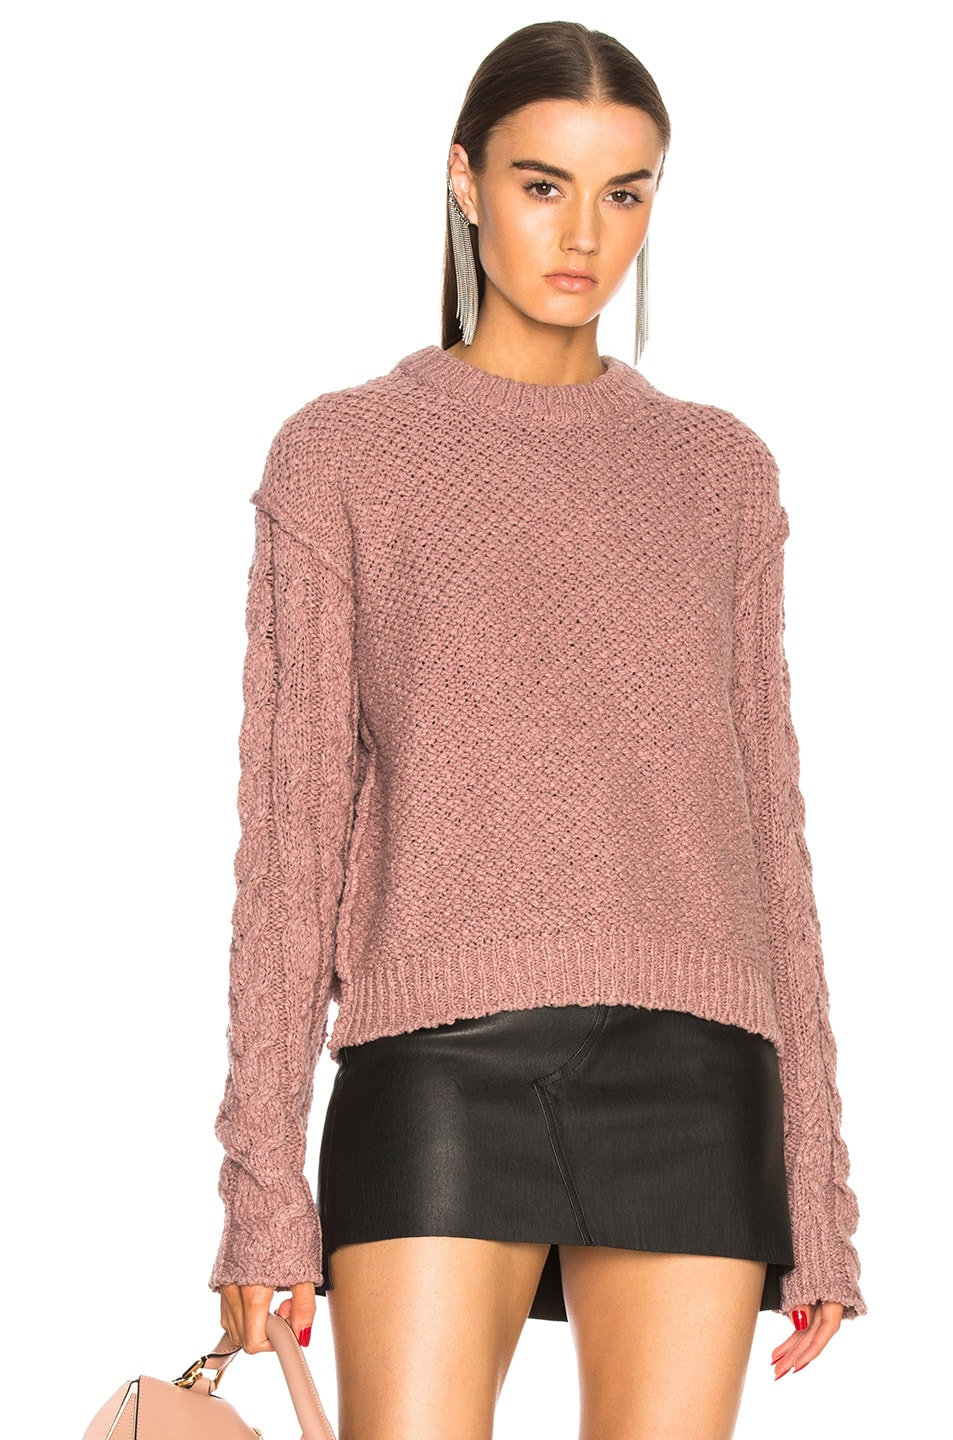 acne studios hila cable sweater in dusty pink fwrd. Black Bedroom Furniture Sets. Home Design Ideas